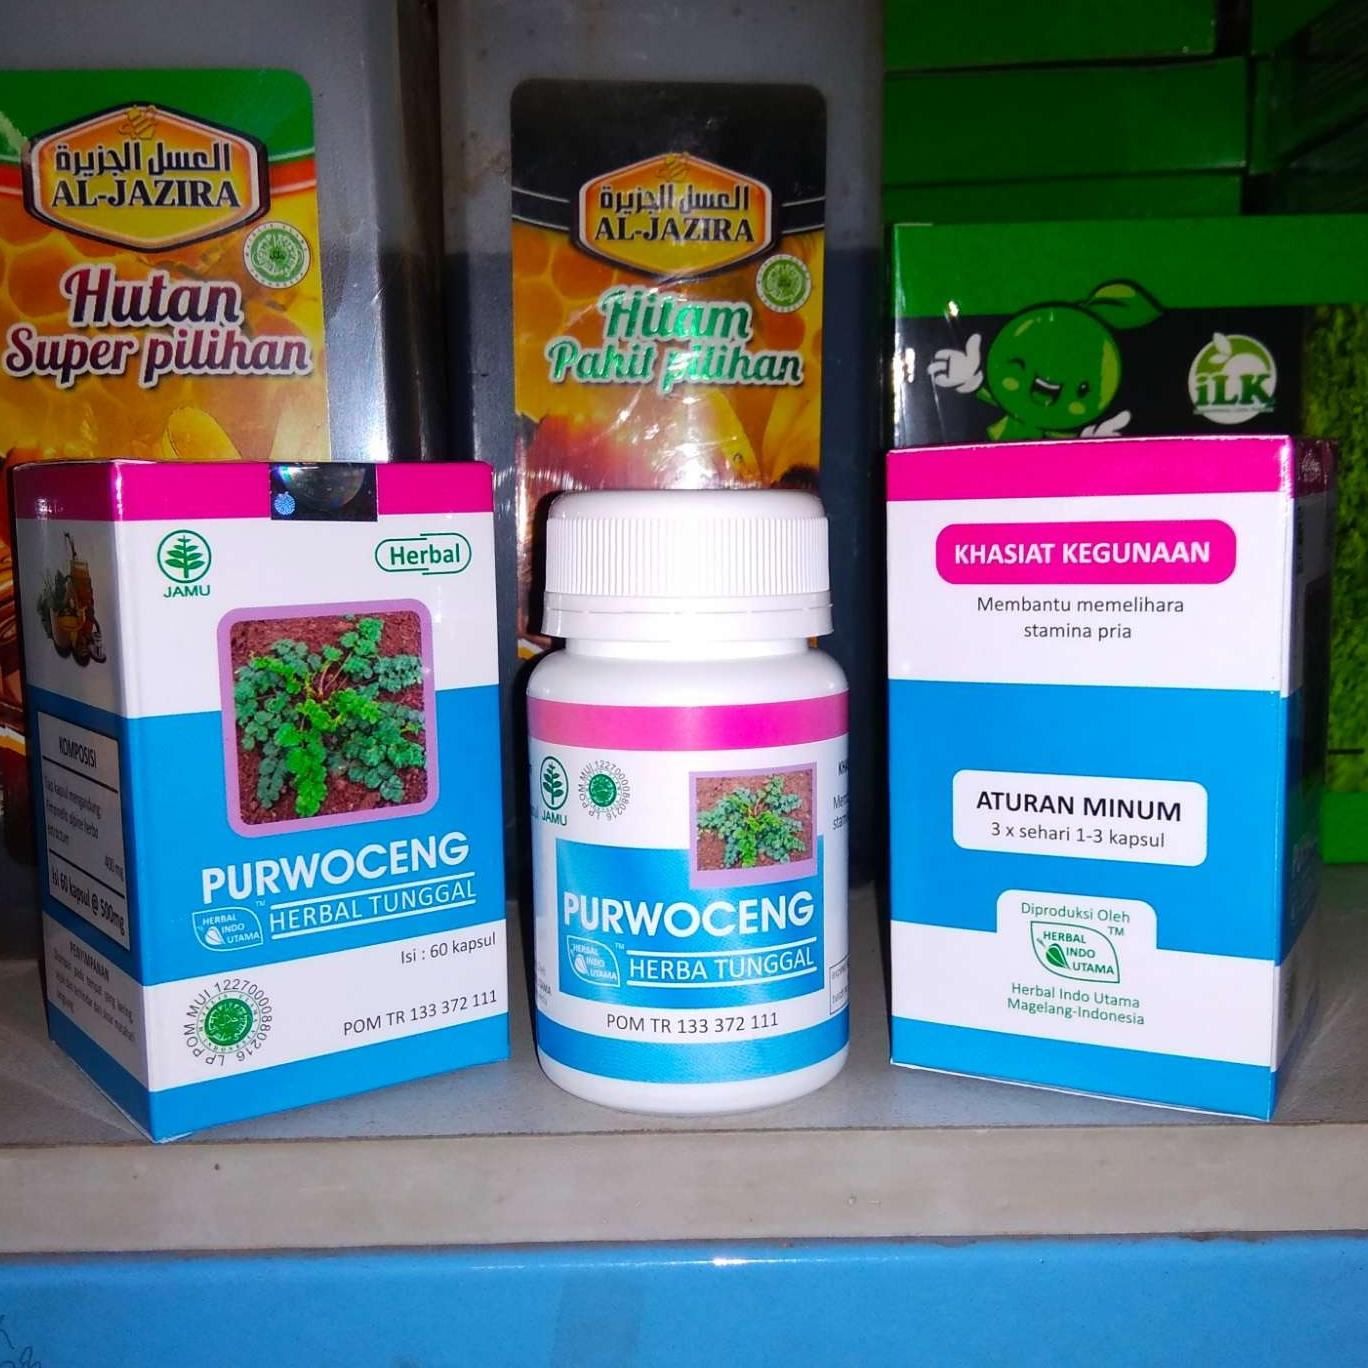 Buy Sell Cheapest Kapsul Purwoceng Isi Best Quality Product Deals Obat Kuat Herbal Plus Oles